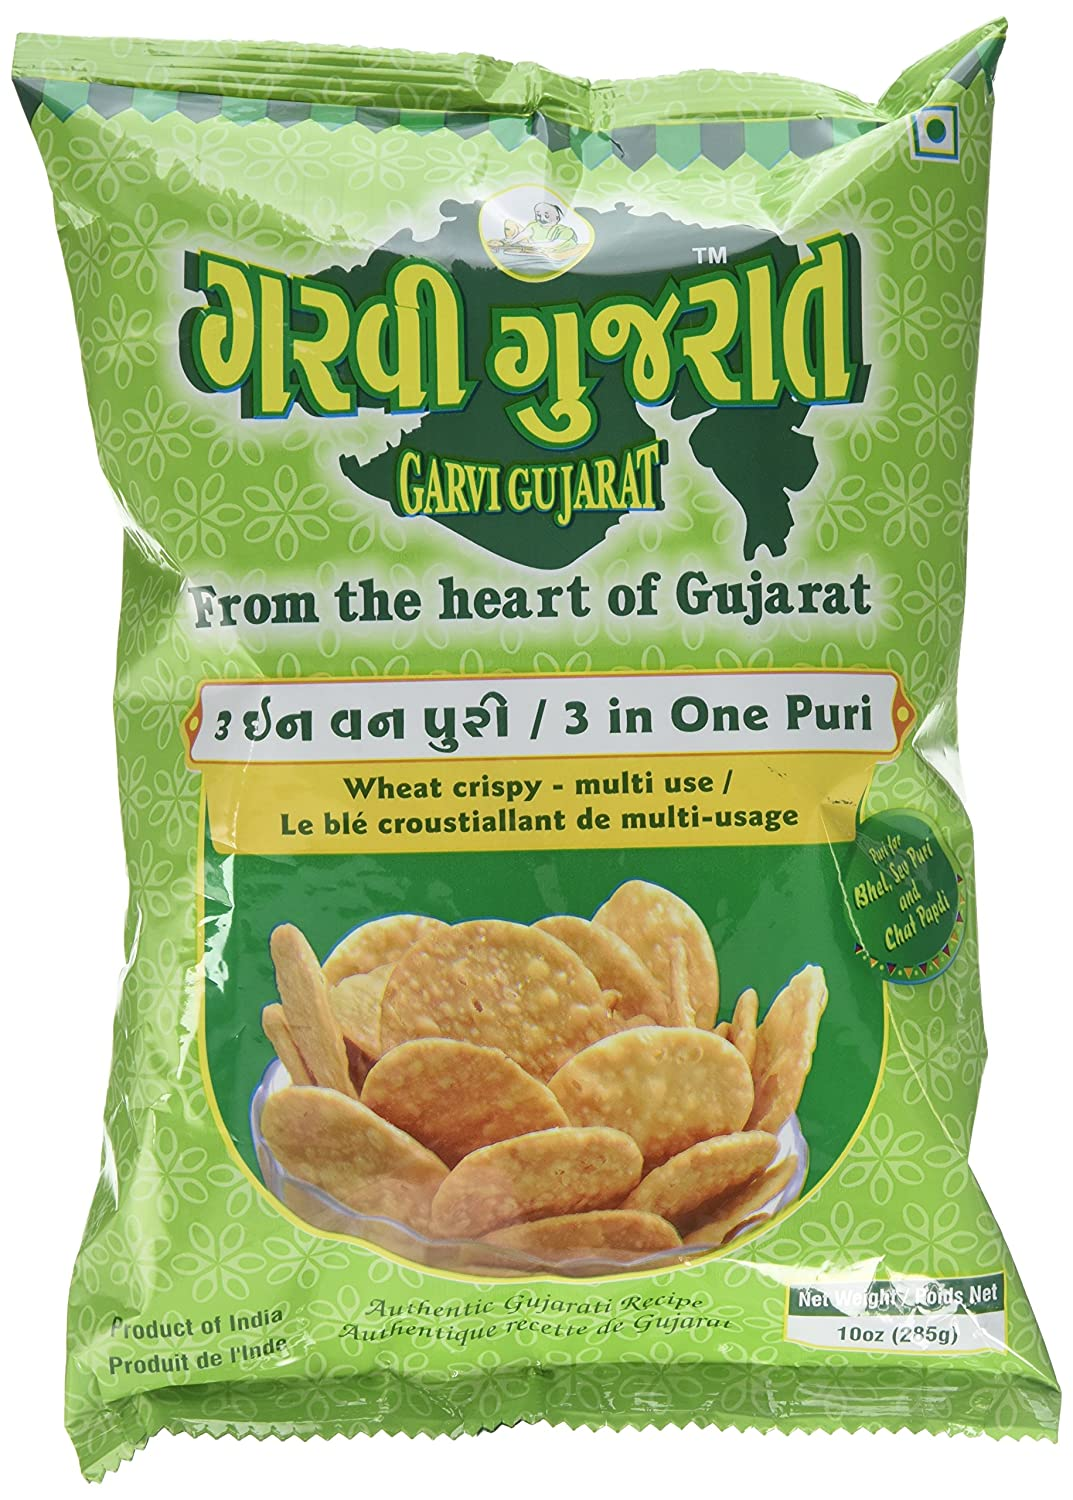 GARVI GUJARAT 3 IN ONE PURI (10 oz)